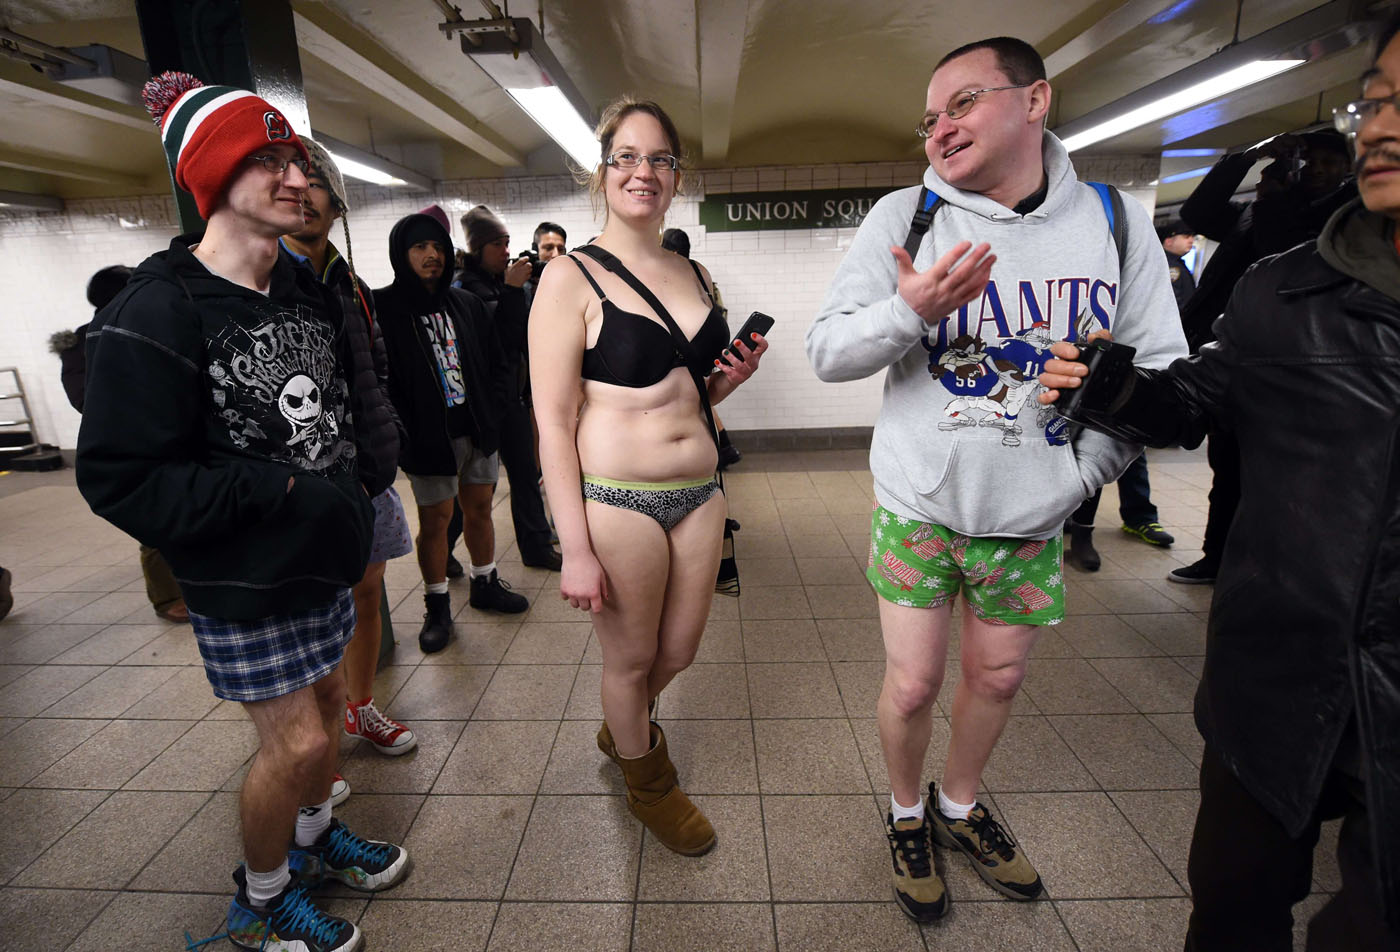 no knickers on train